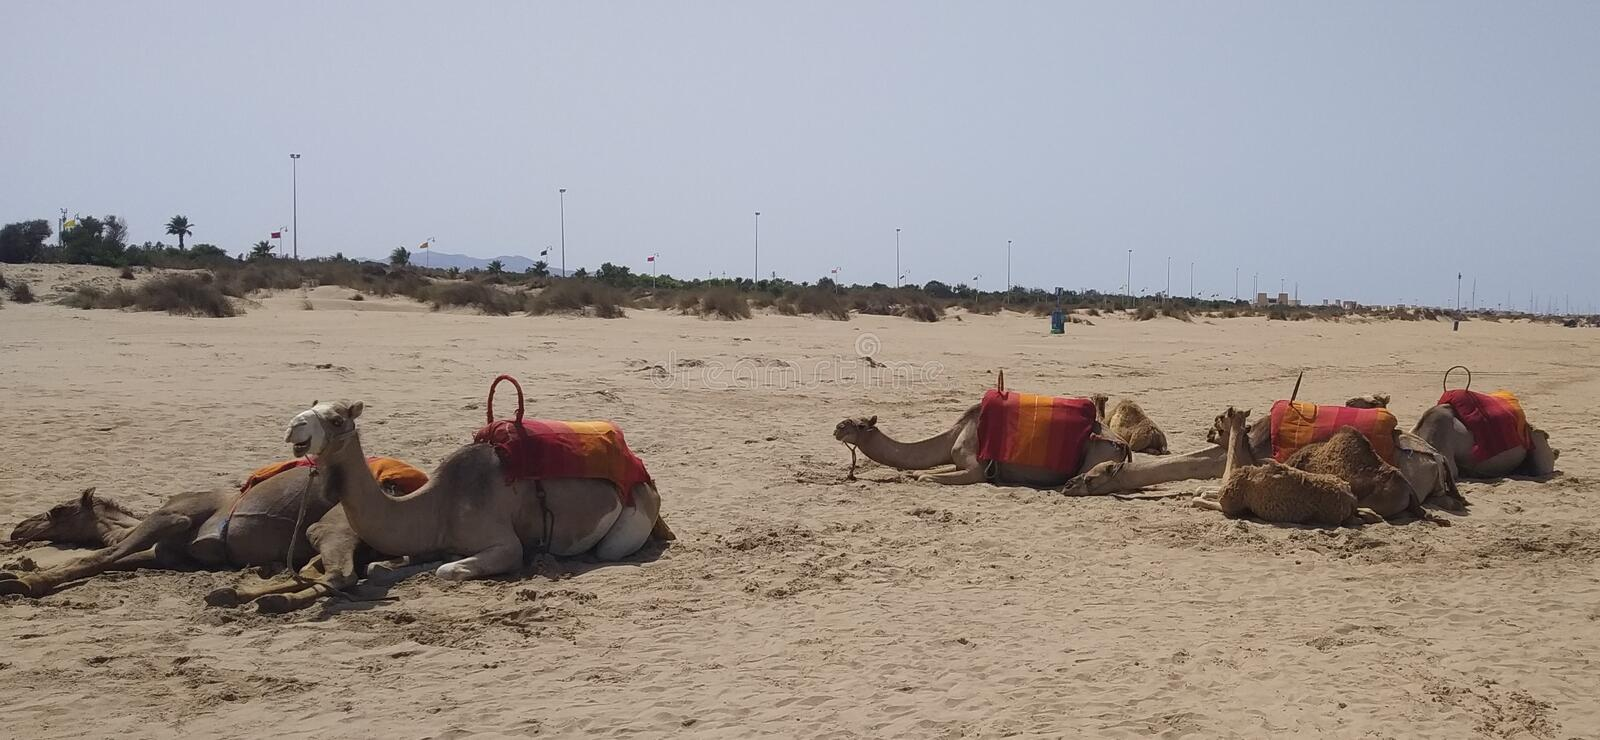 Camels in Desert. Morroccos Africa stock image